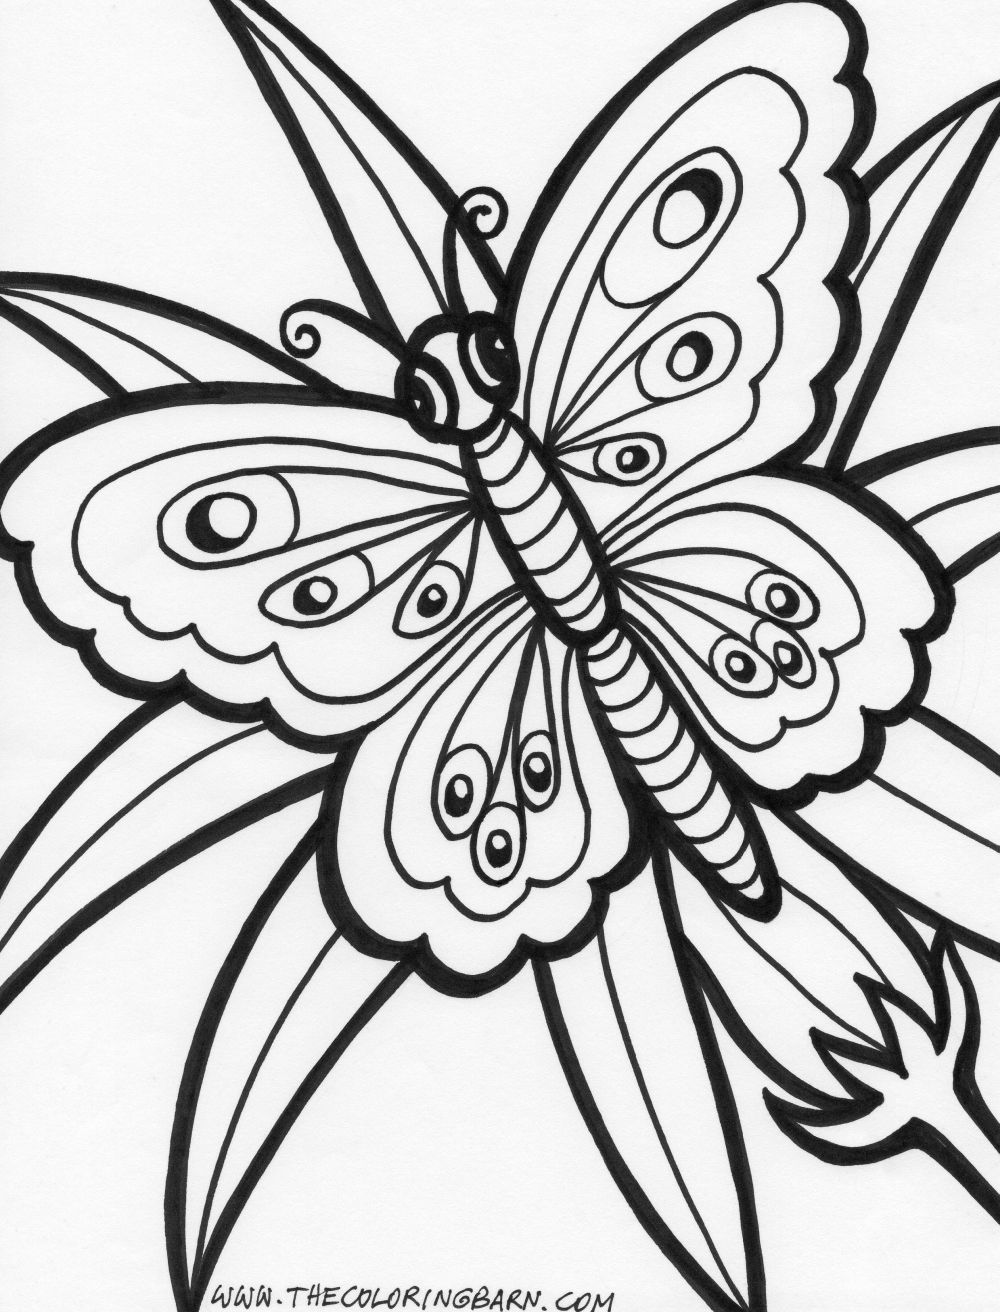 free printable flower coloring pages summer flowers printable coloring pages free large images flower pages coloring free printable